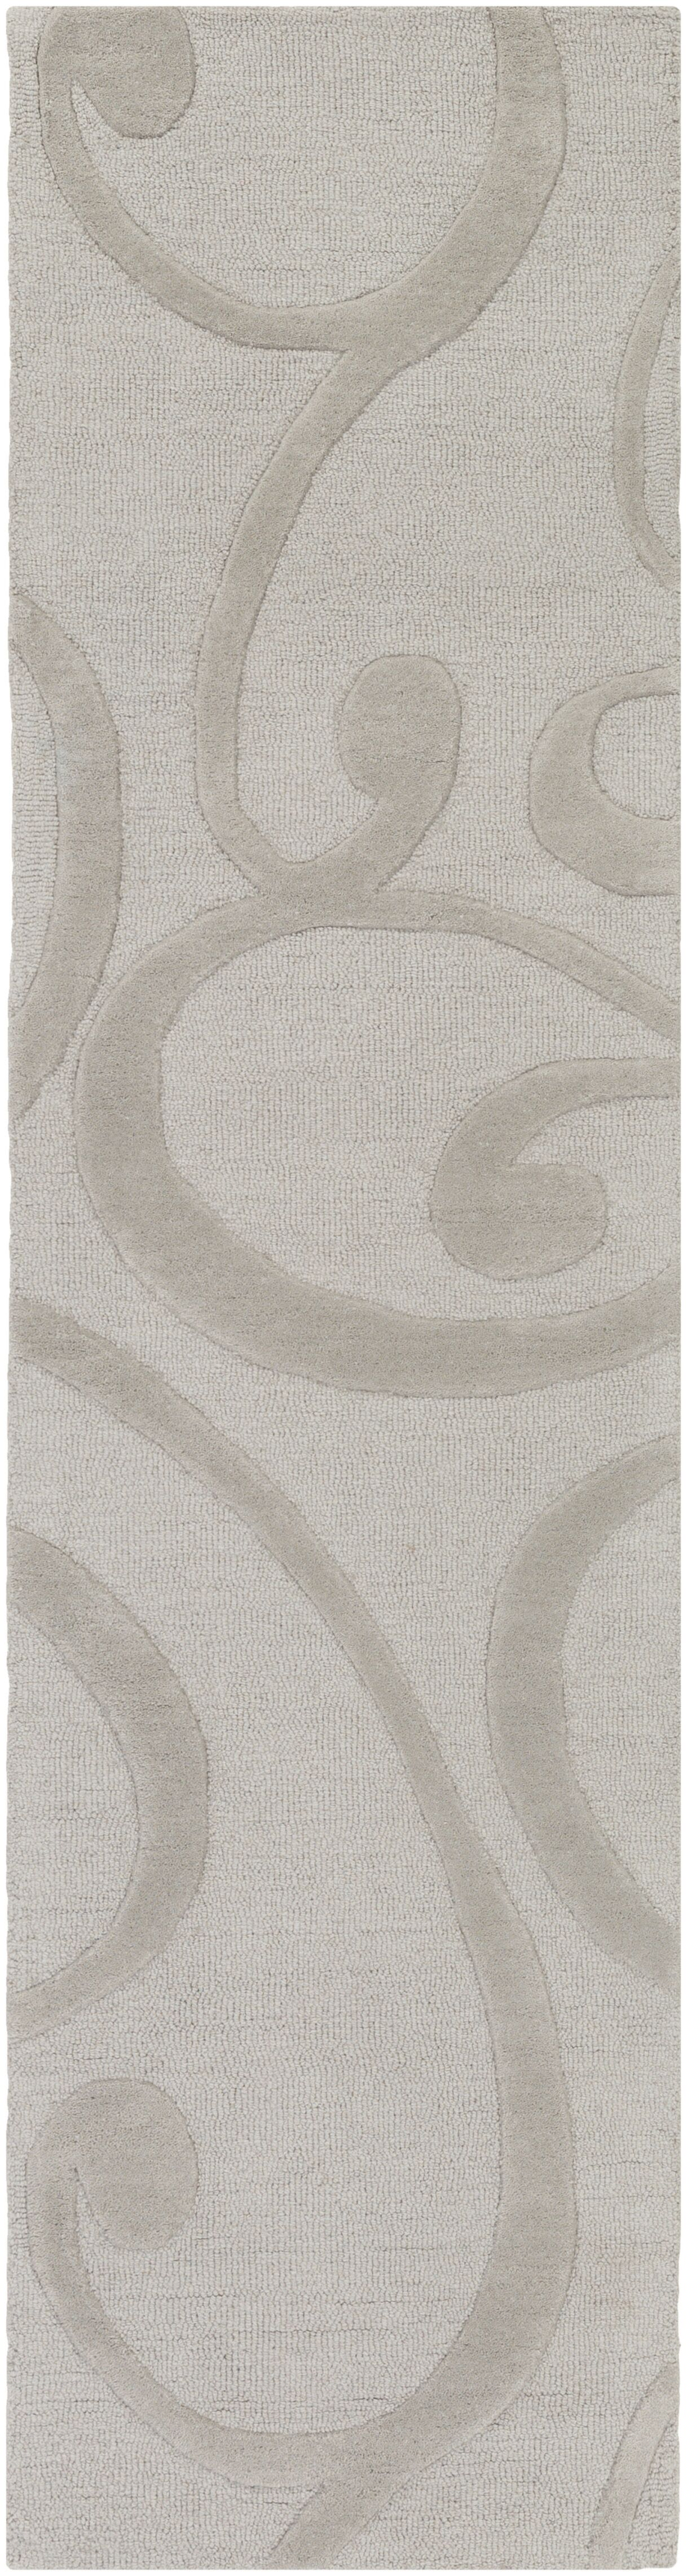 Allegro Hand-Tufted Stone Area Rug Rug Size: Runner 2' x 8'